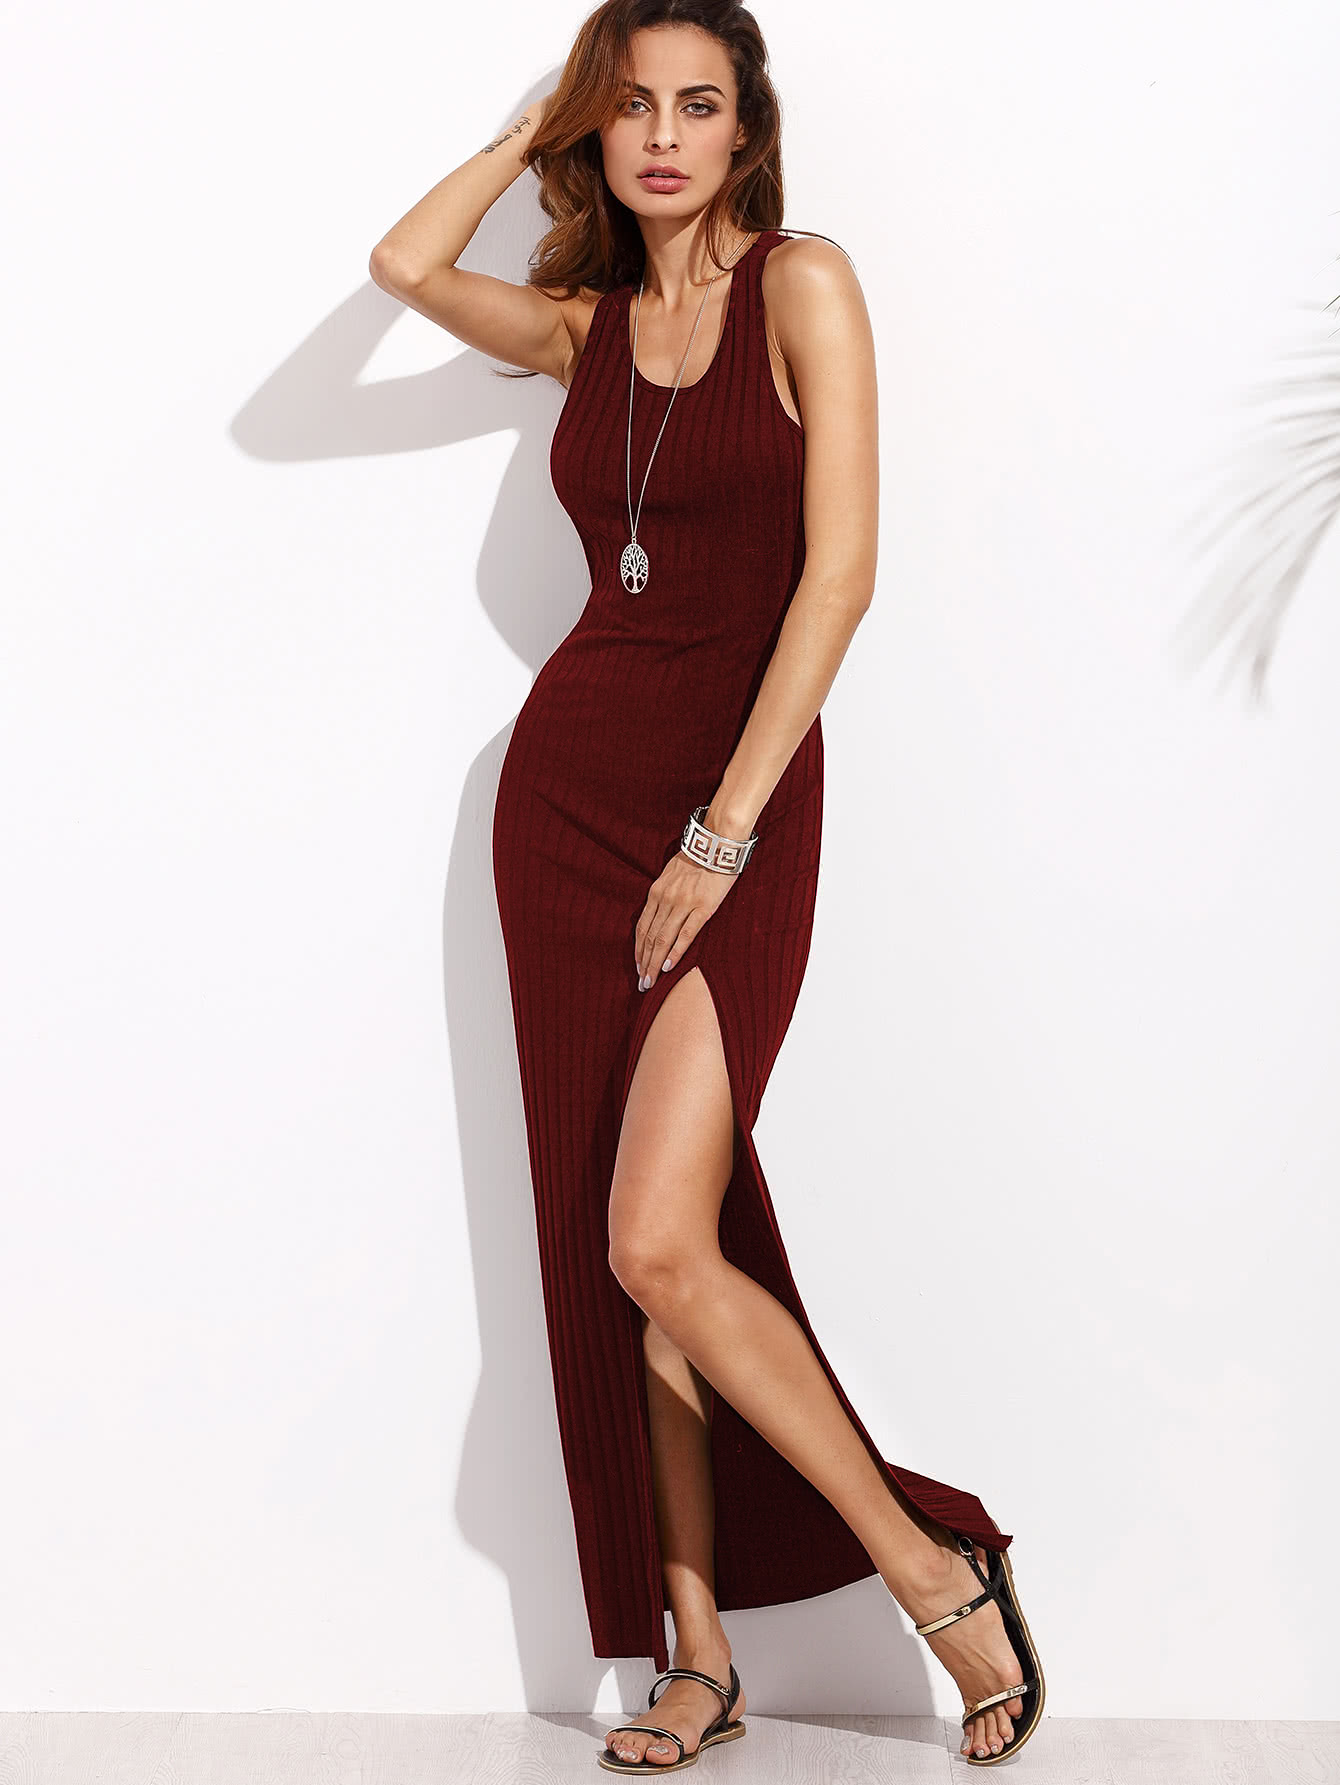 Rib Knit High Slit Racerback Dress Rib Knit High Slit Racerback Dress